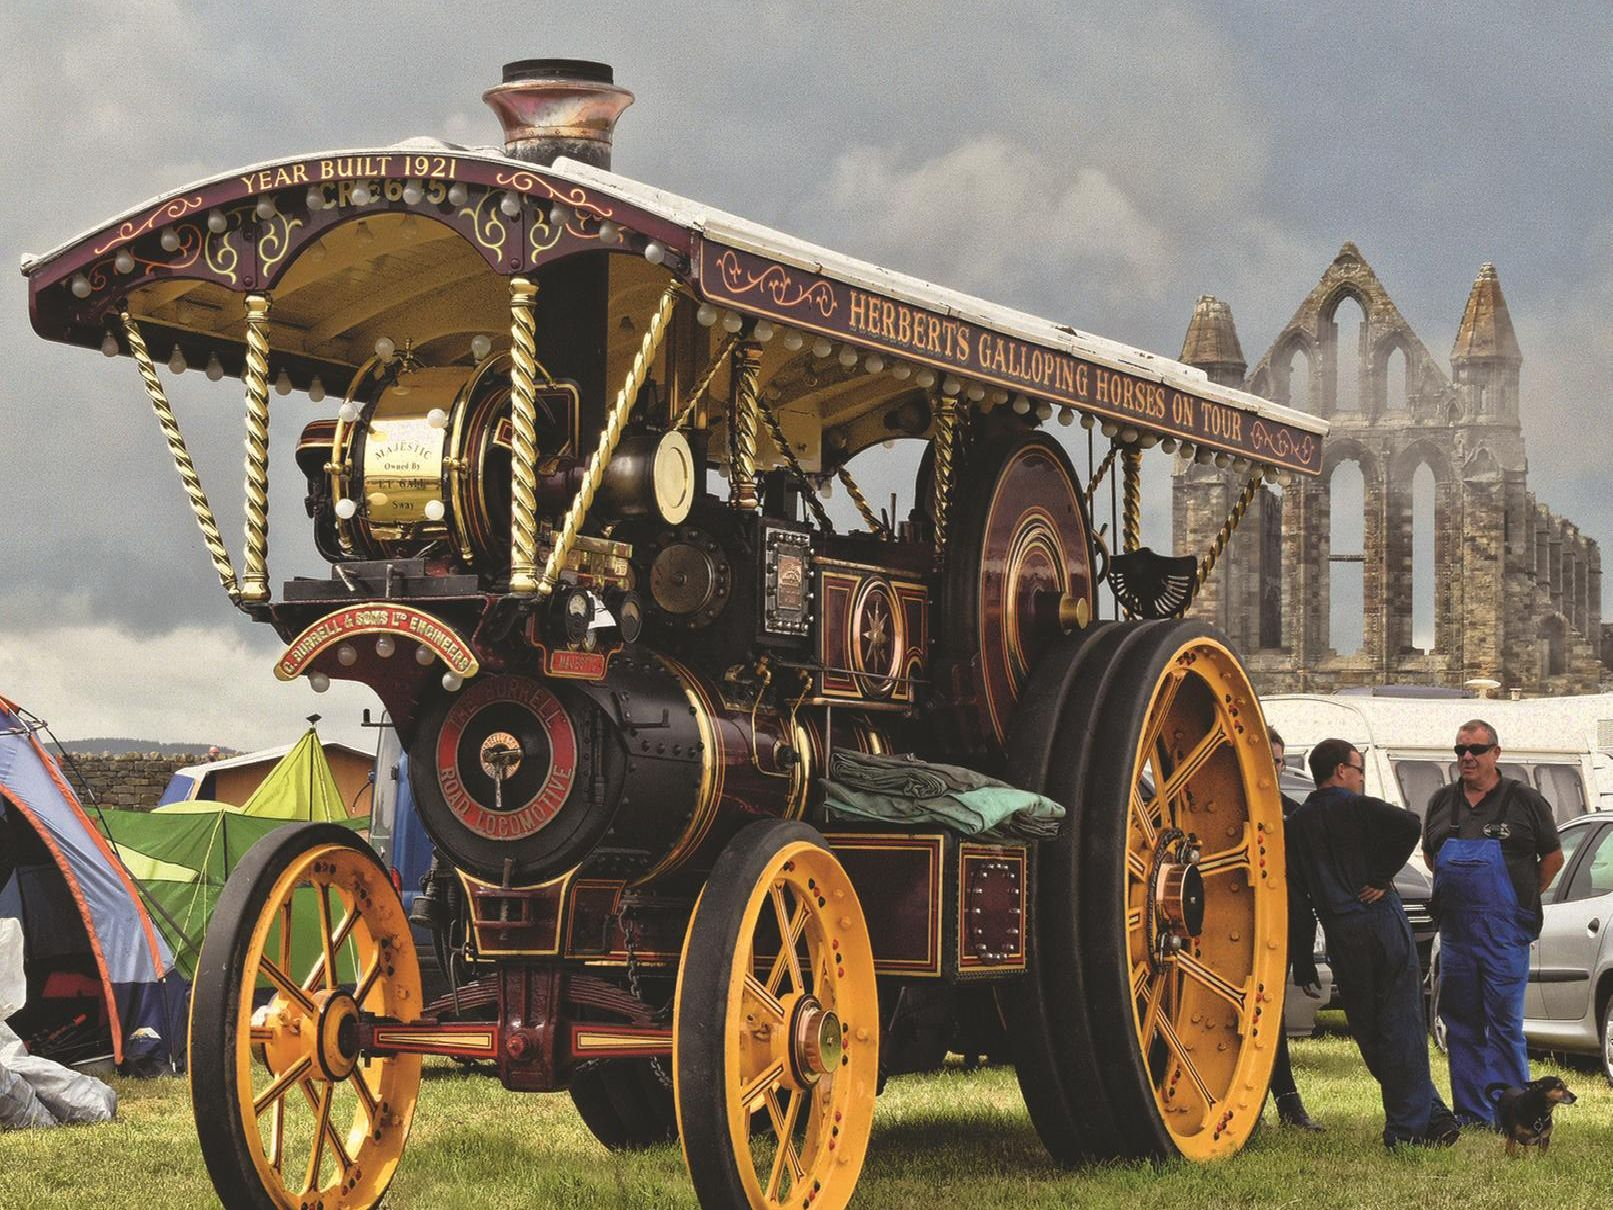 2018 - Steam engine in front of Whitby Abbey